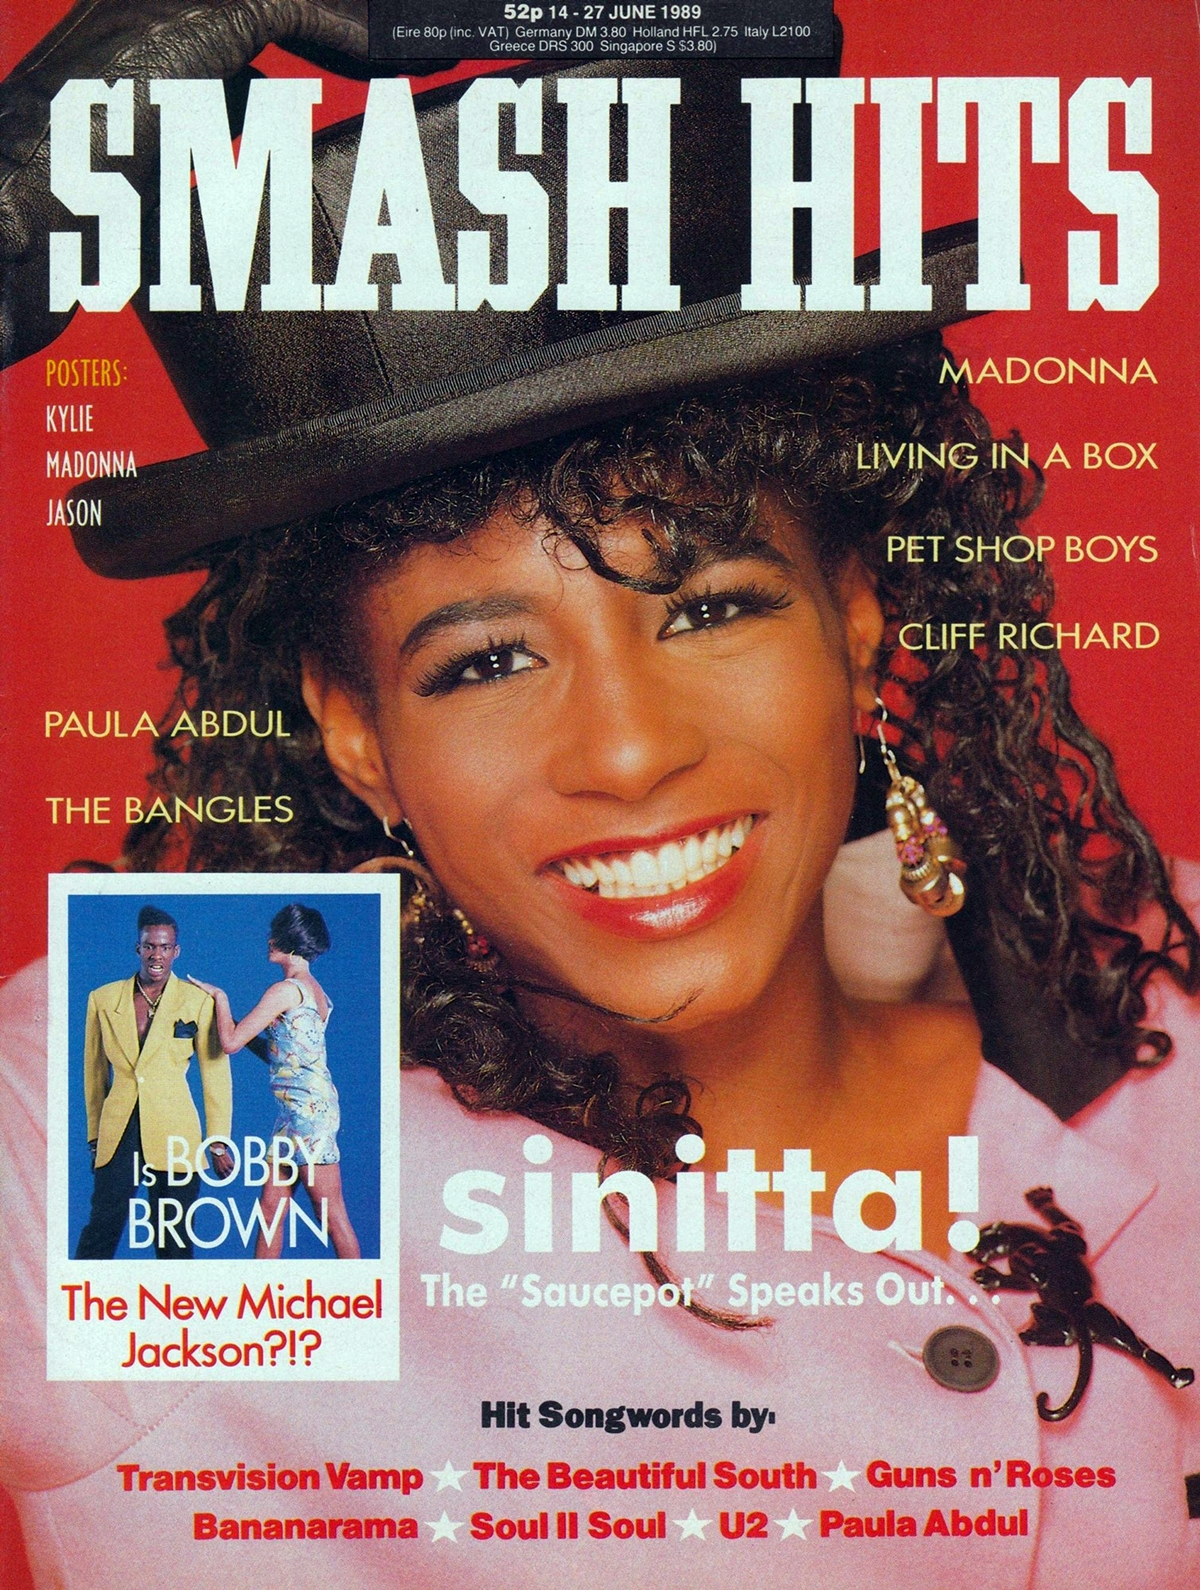 6 2 16 Smash Hits Covers That Will Take You Right Back To Your Youth